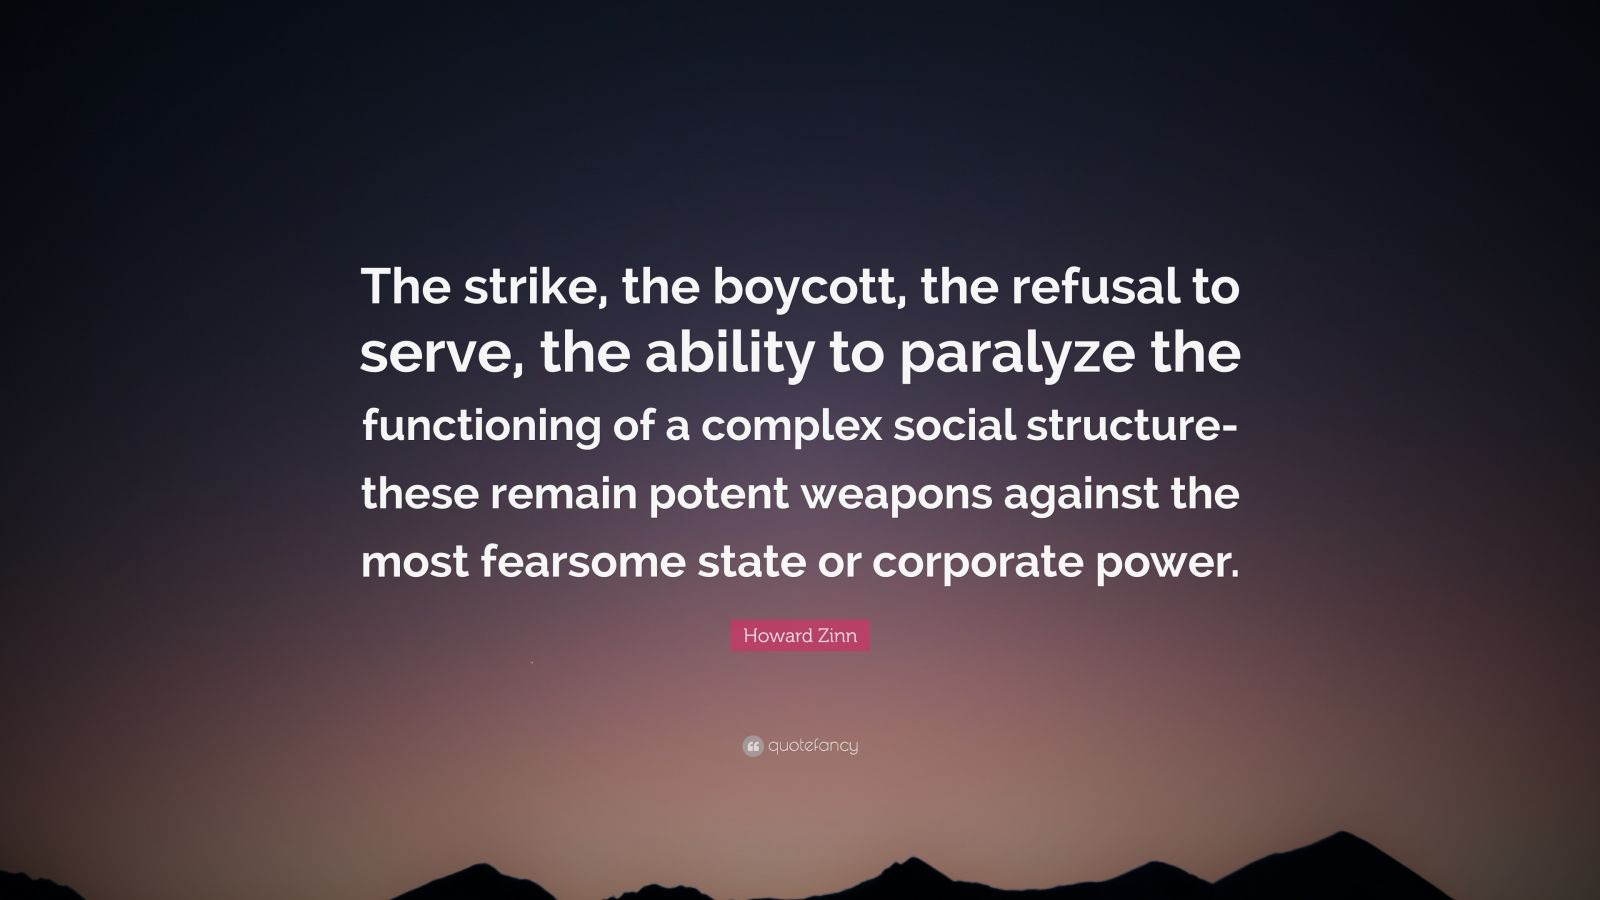 "Howard Zinn Quote: ""The strike, the boycott, the refusal to serve, the ability to paralyze the functioning of a complex social structure-these remain potent weapons against the most fearsome state or corporate power."""